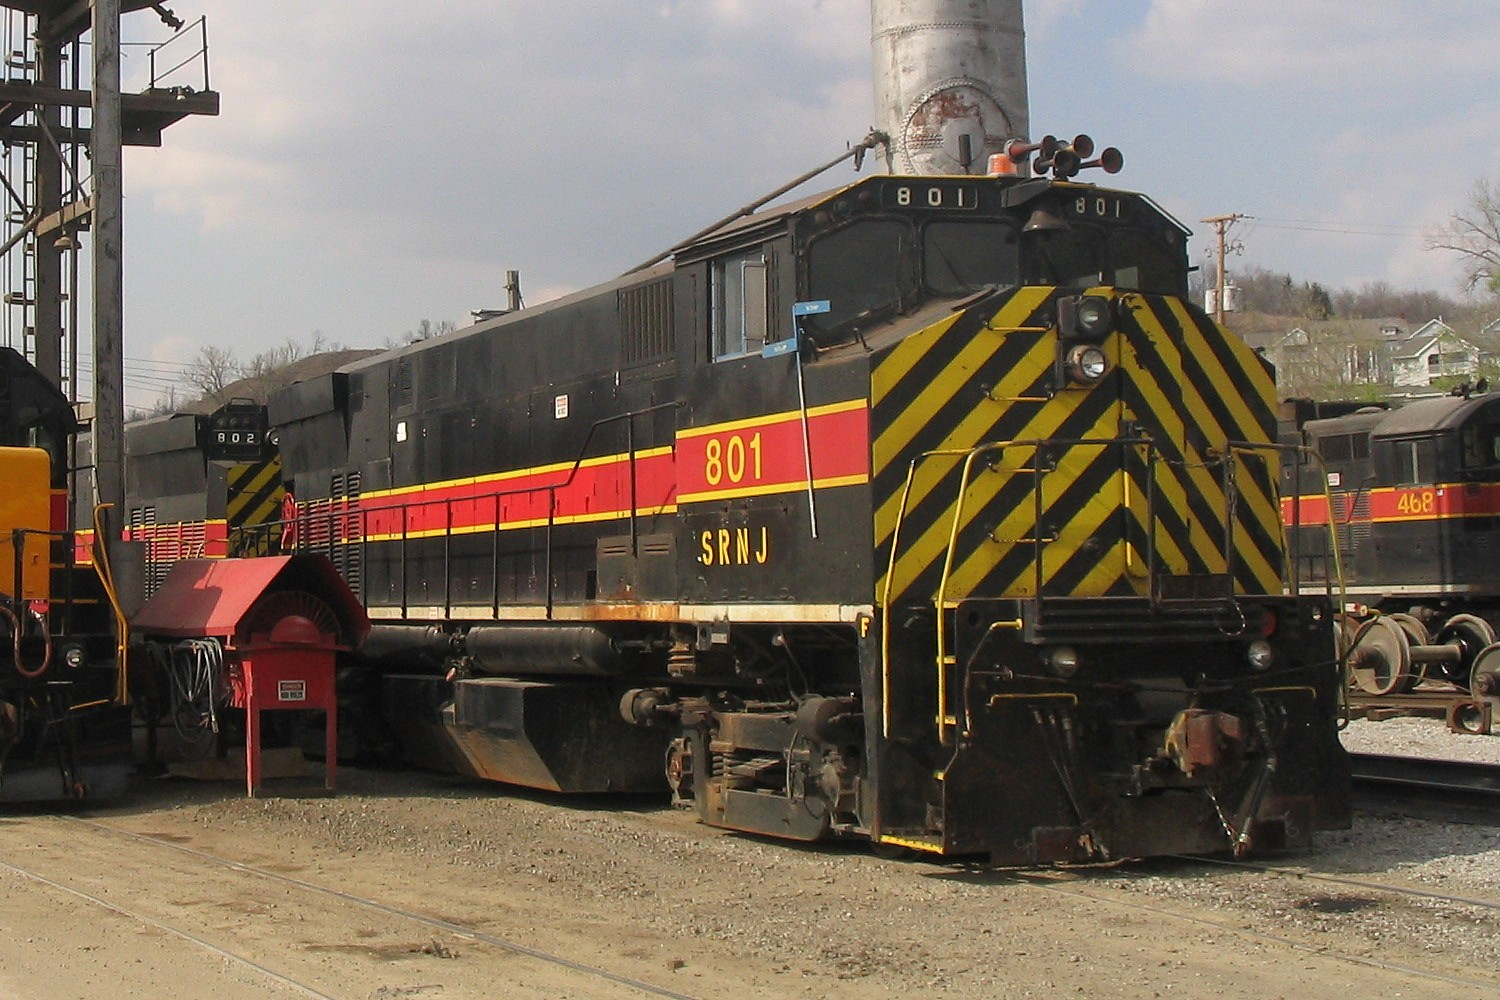 IAIS 801 at Council Bluffs, IA on 09-Apr-2005